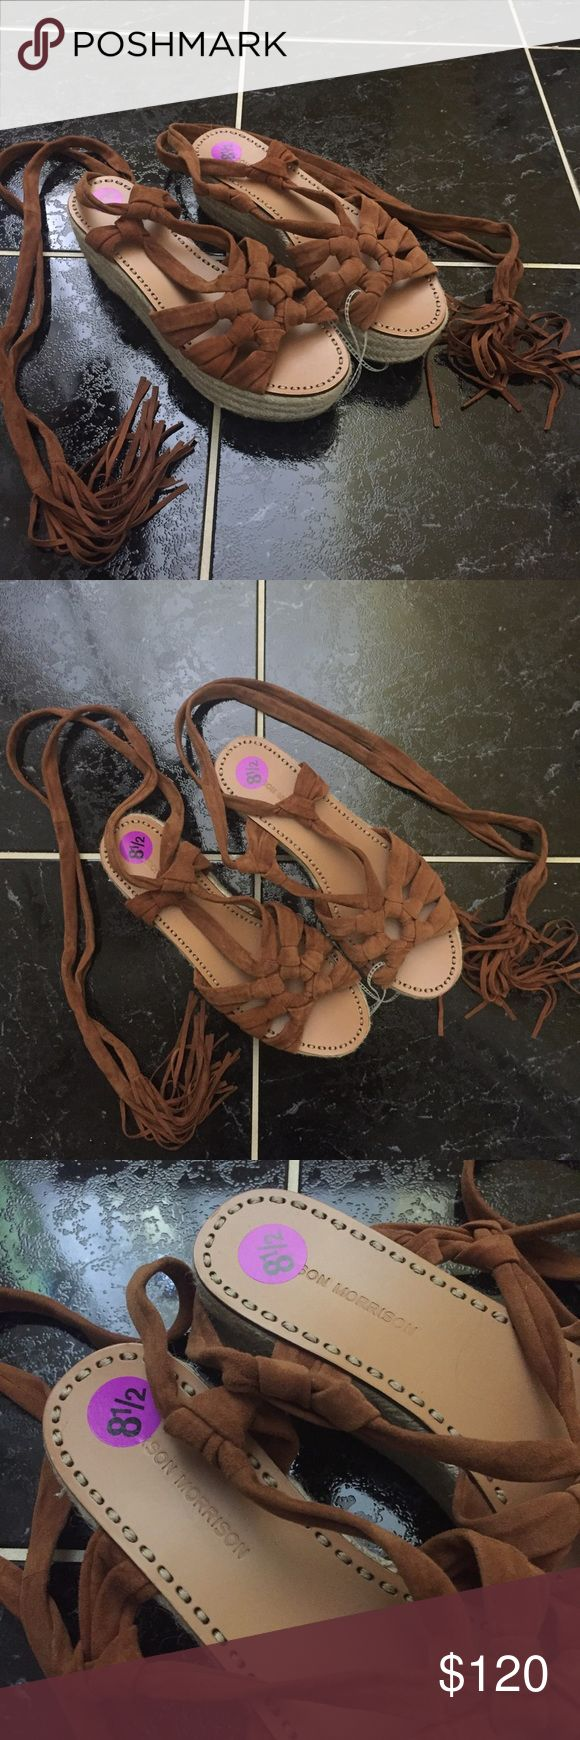 Sigerson Morrison Cosie Lace Up Espadrilles 8 1/2 Stay on trend with these NWT lace up espadrilles. Never worn. Sigerson Morrison Shoes Espadrilles